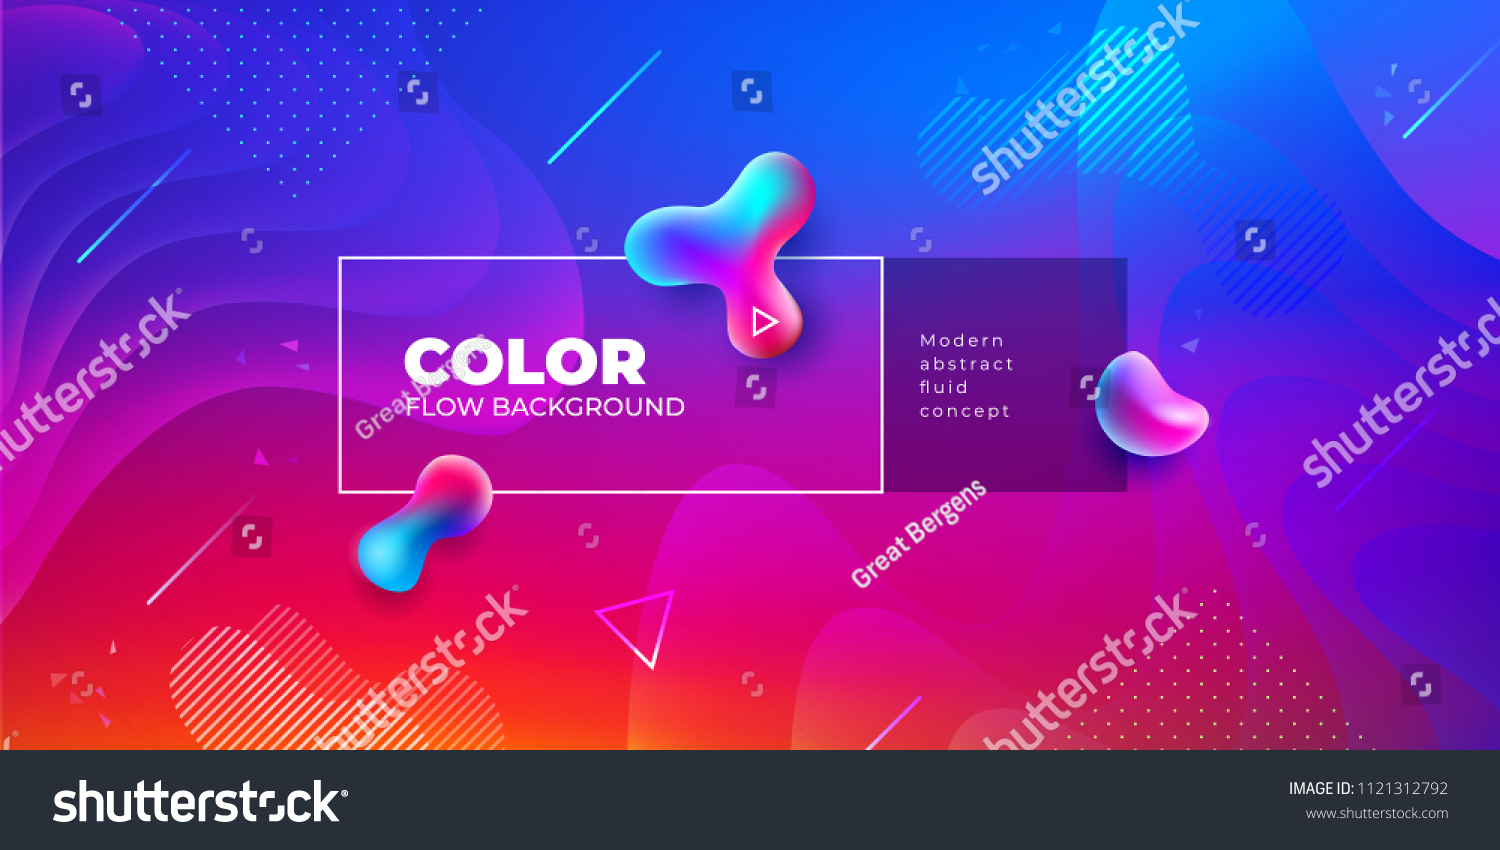 Liquid color background design. Fluid gradient shapes composition. Futuristic design posters. Eps10 vector. #1121312792